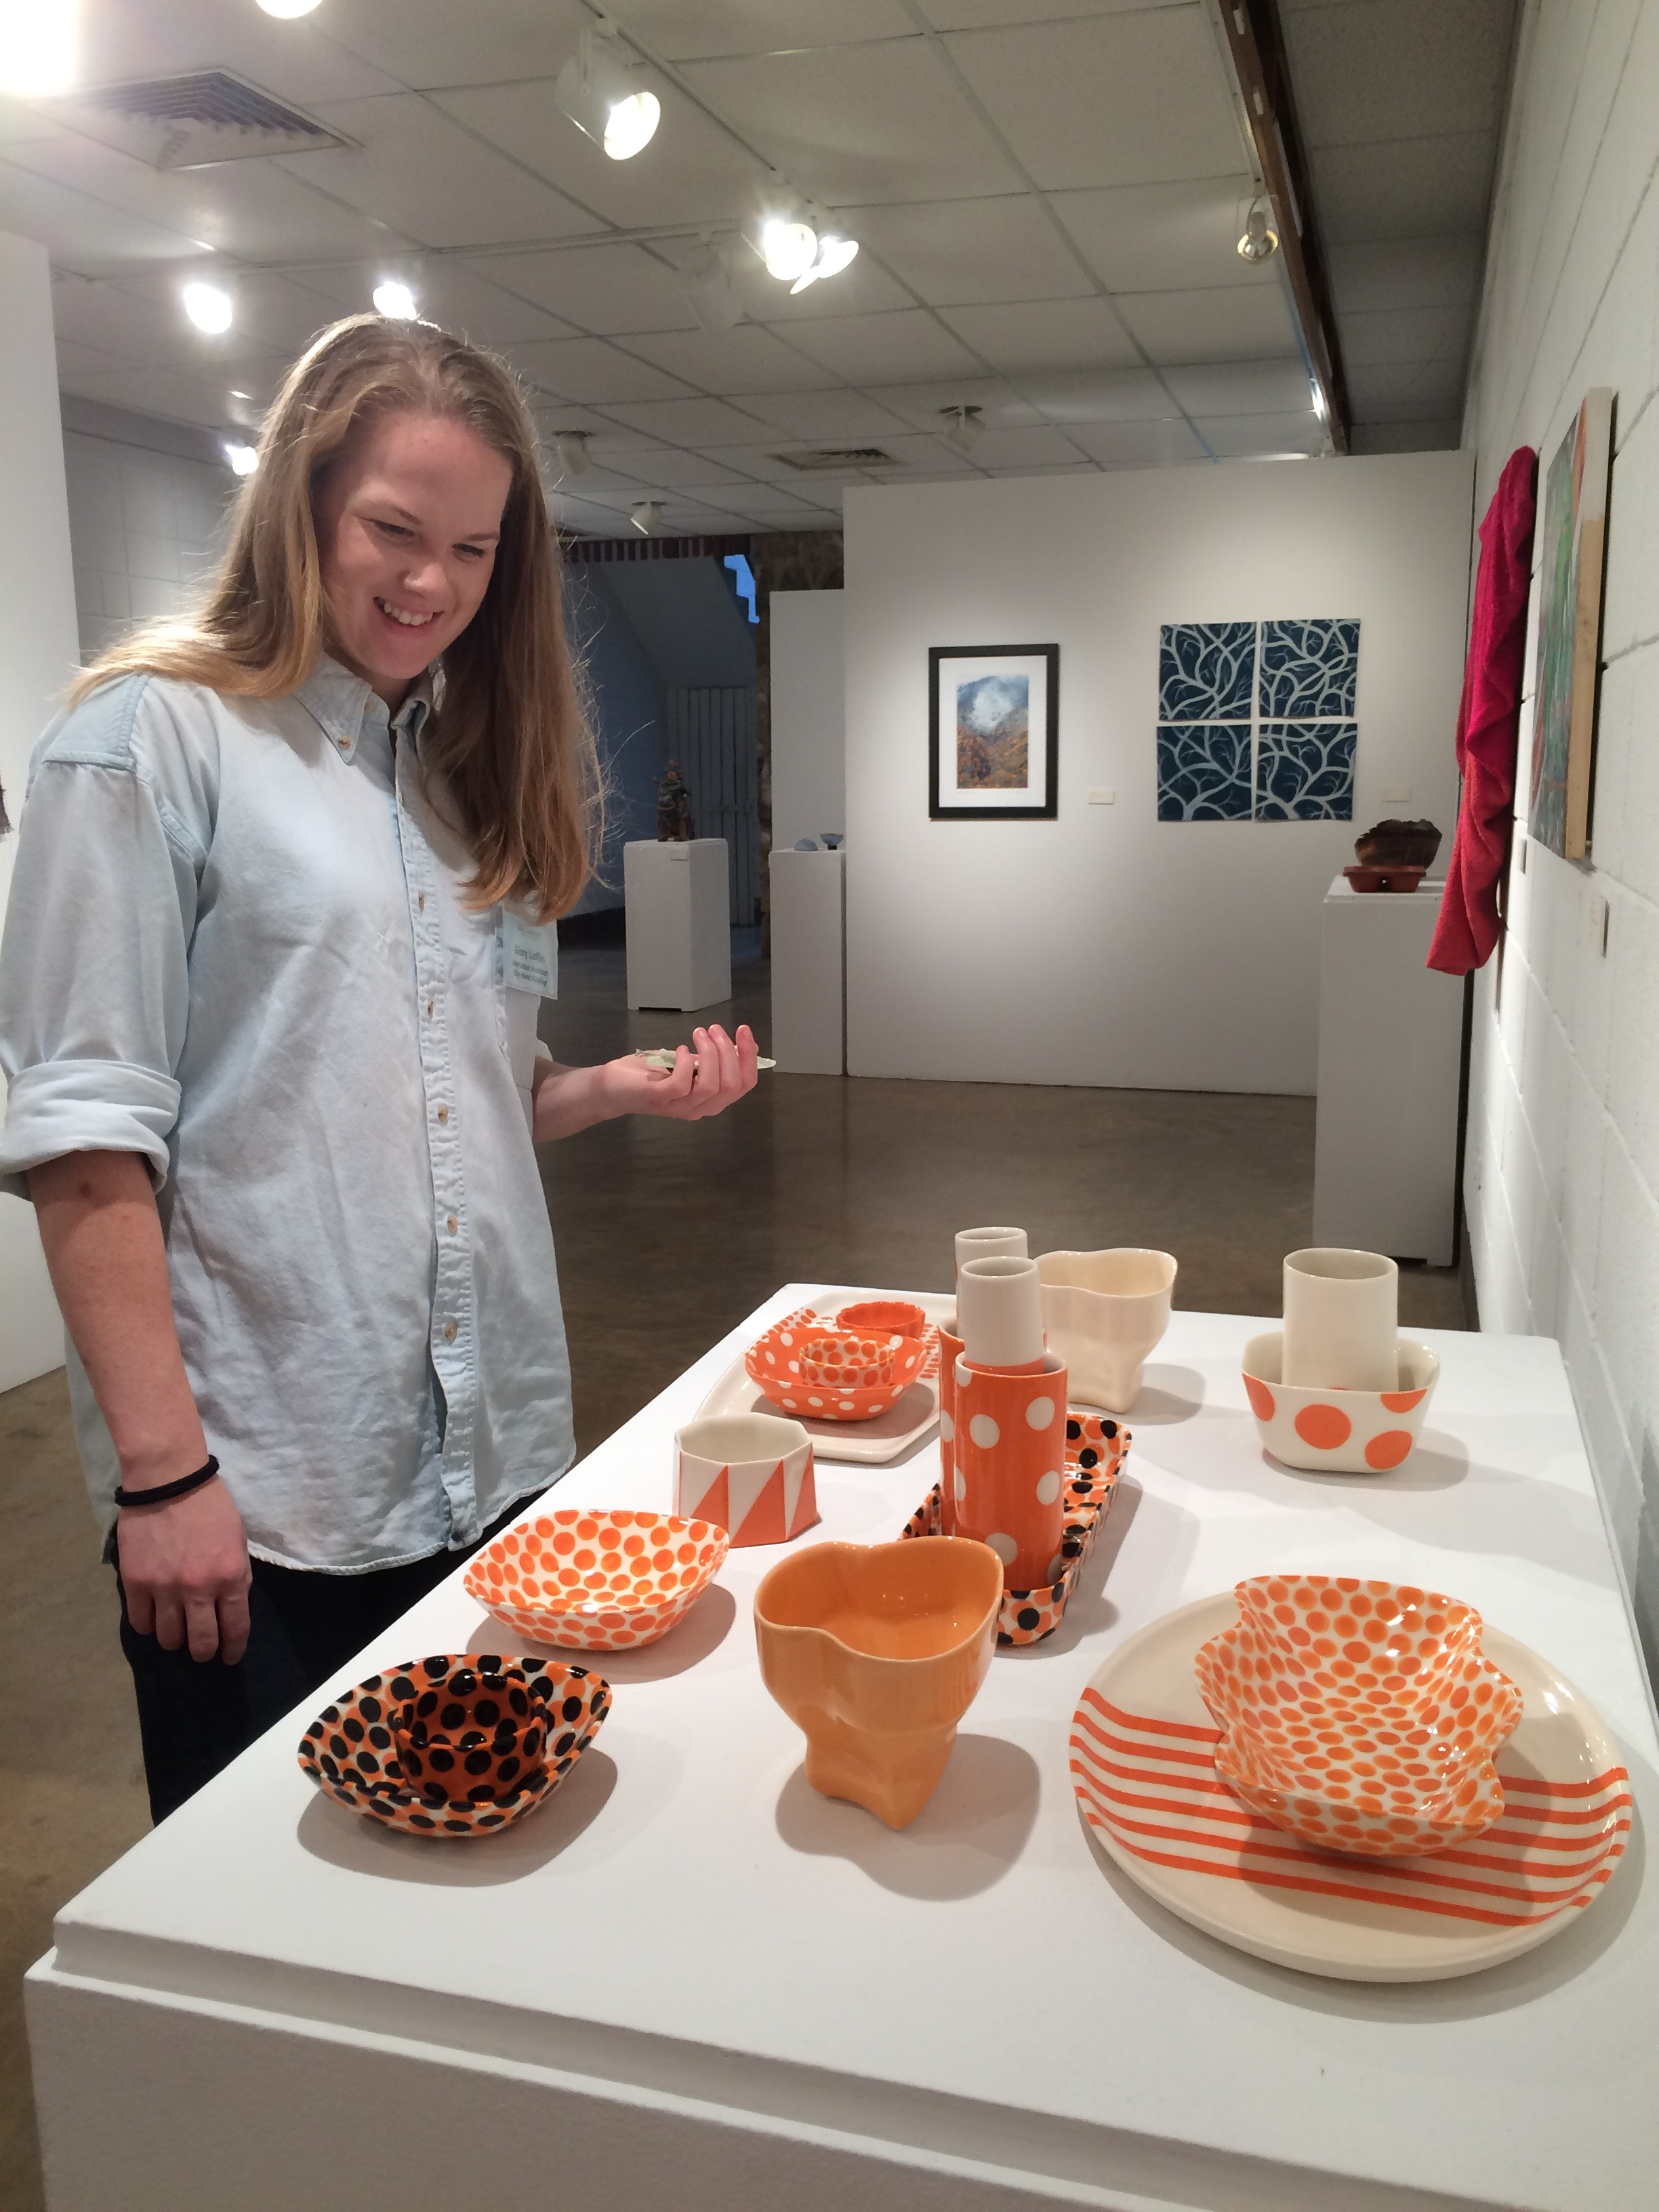 """My assistant,Glory Day Loflin, inspecting the instructor's show installed in the elegant, mid-century modern style gallery space at Arrowmont and Day 1 of the workshop """"Finding Your Form Through Nature""""."""